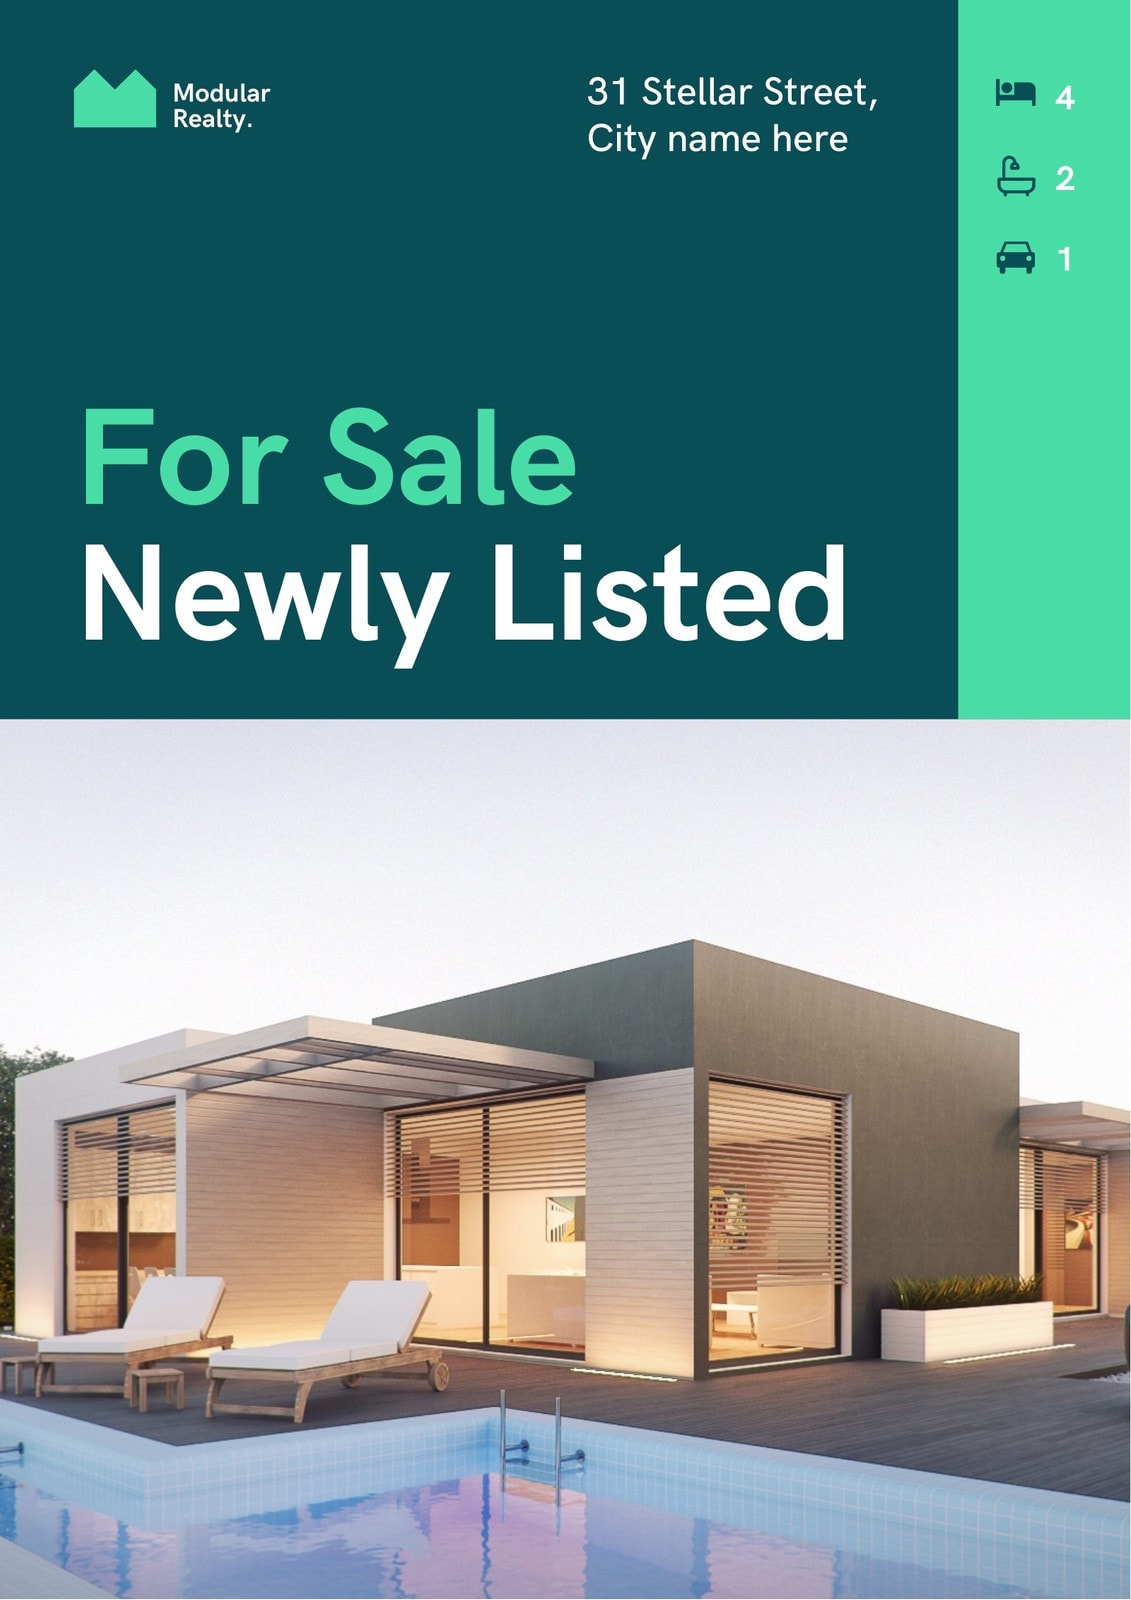 Green Modular Realty For Sale Newly Listed Real Estate Flyer